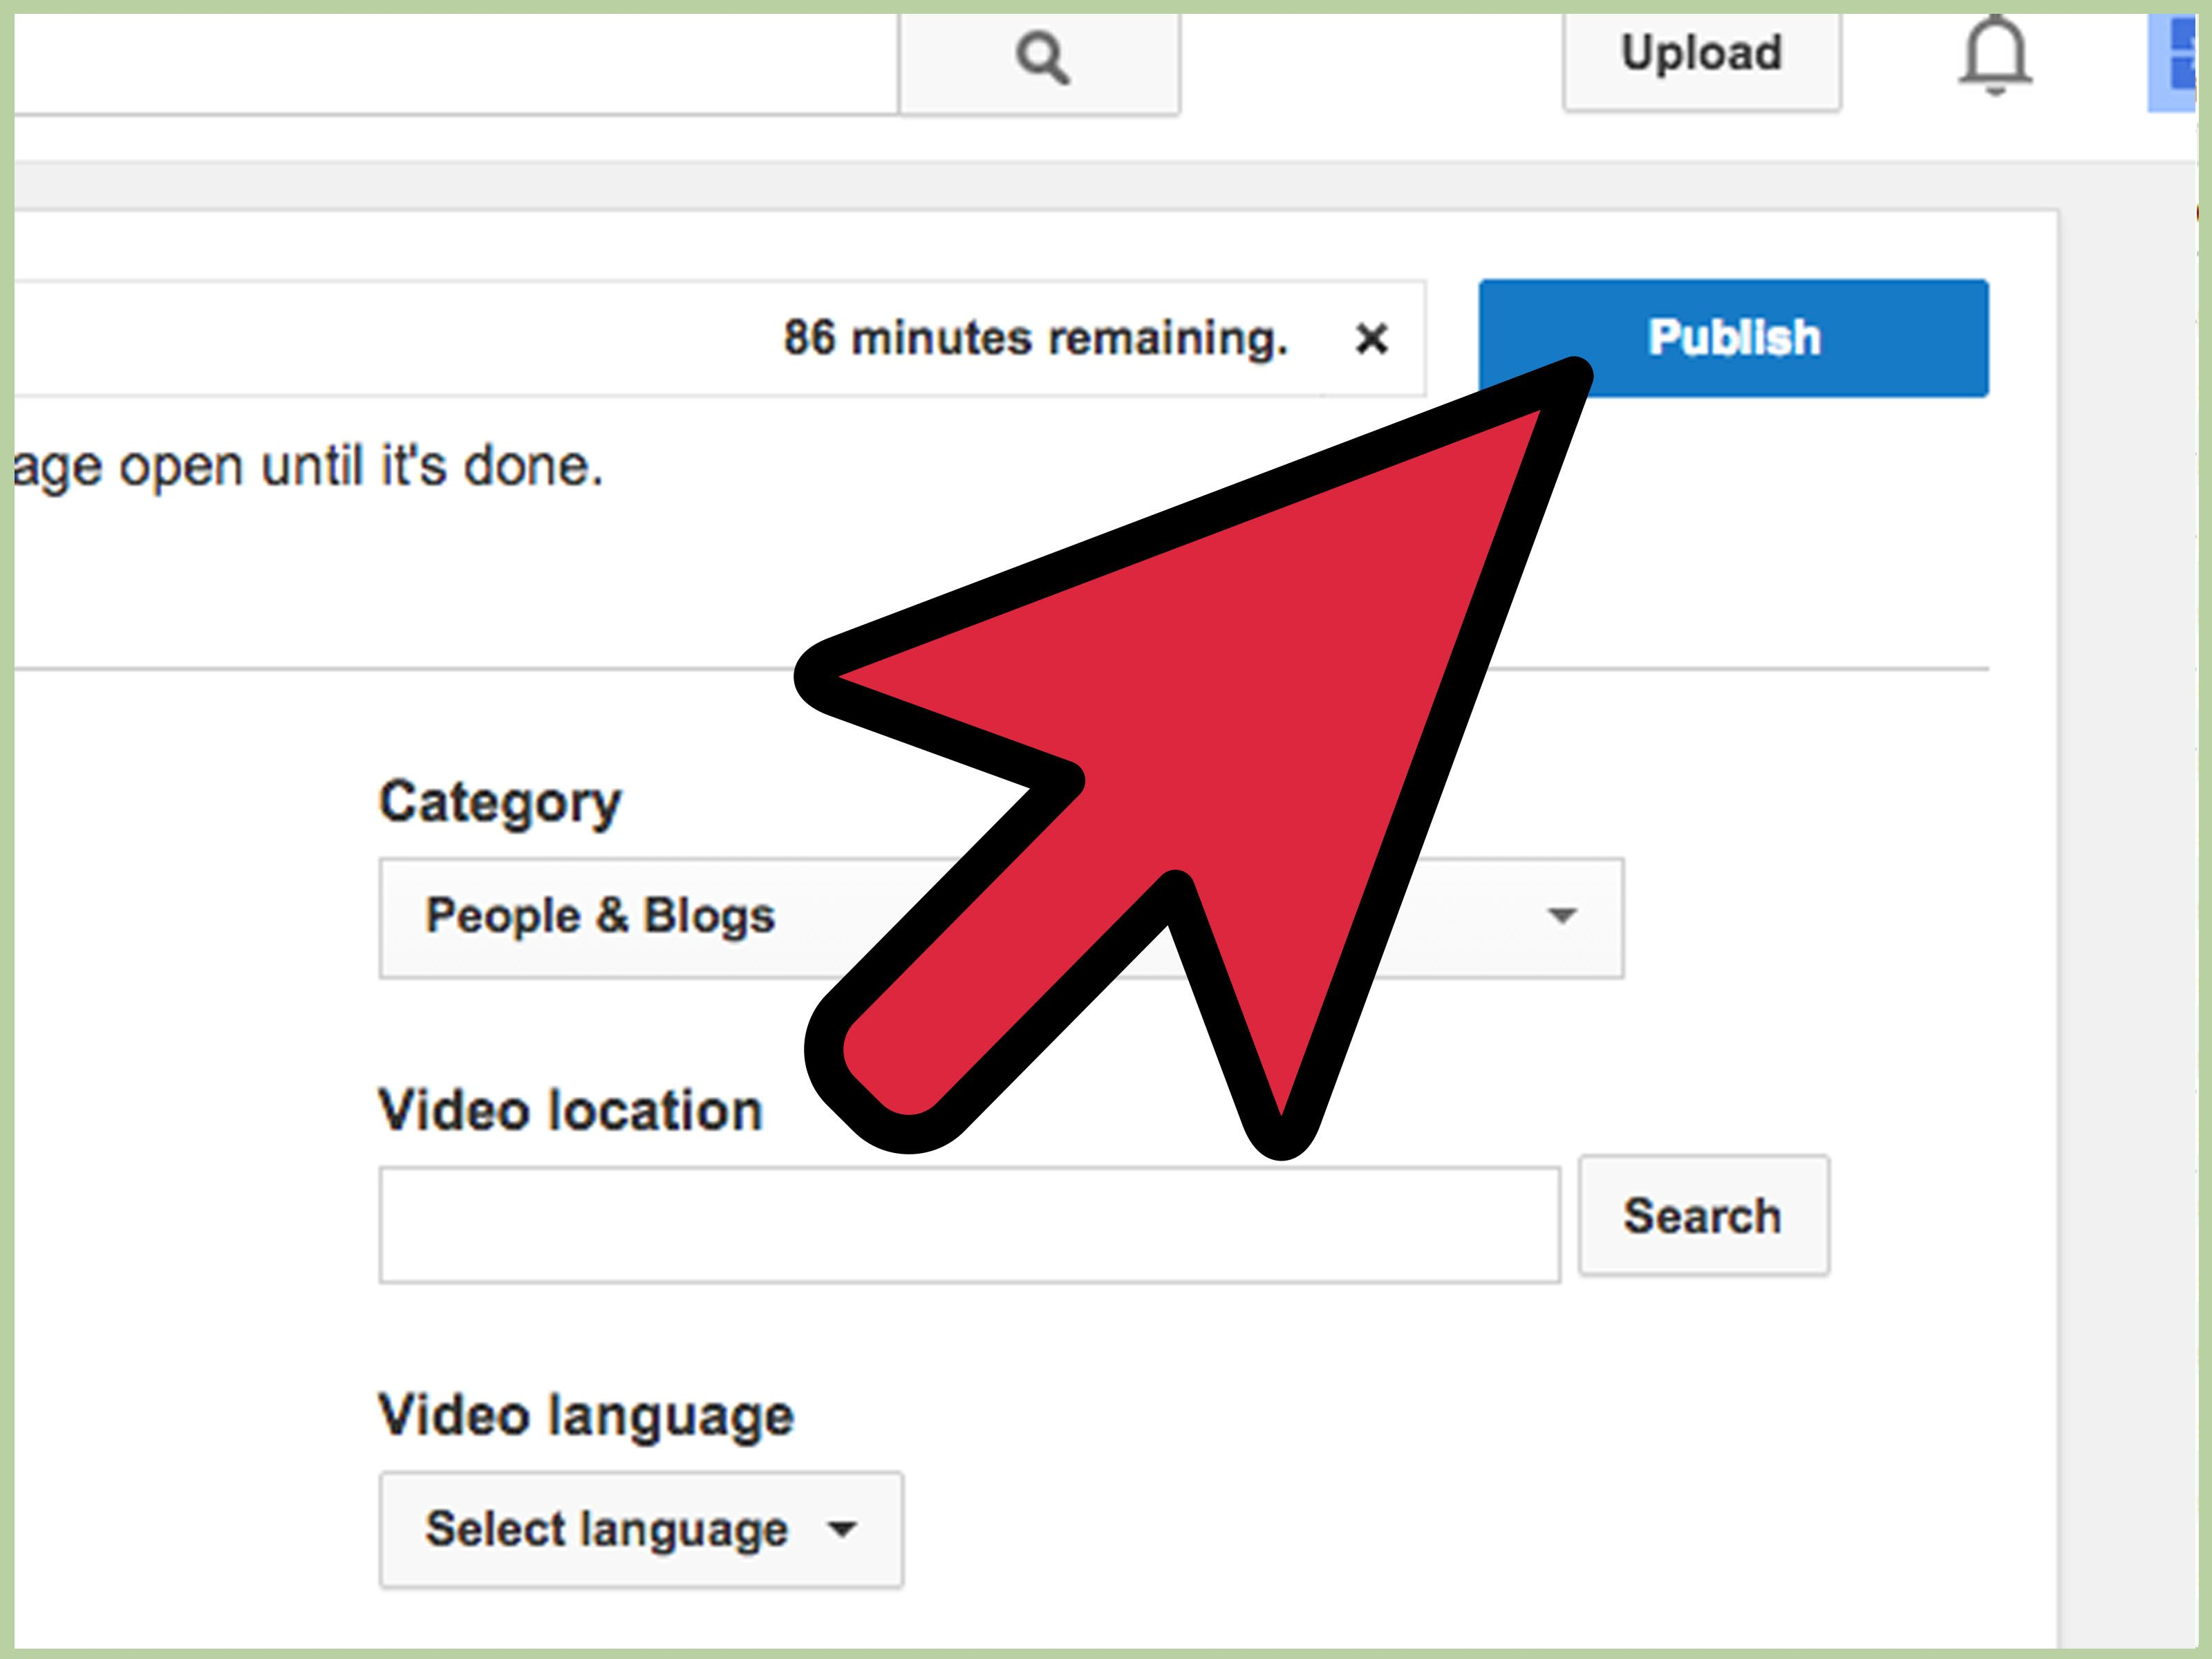 How To Upload A Video To Youtube Youtube Videos Twitter Video Search Video